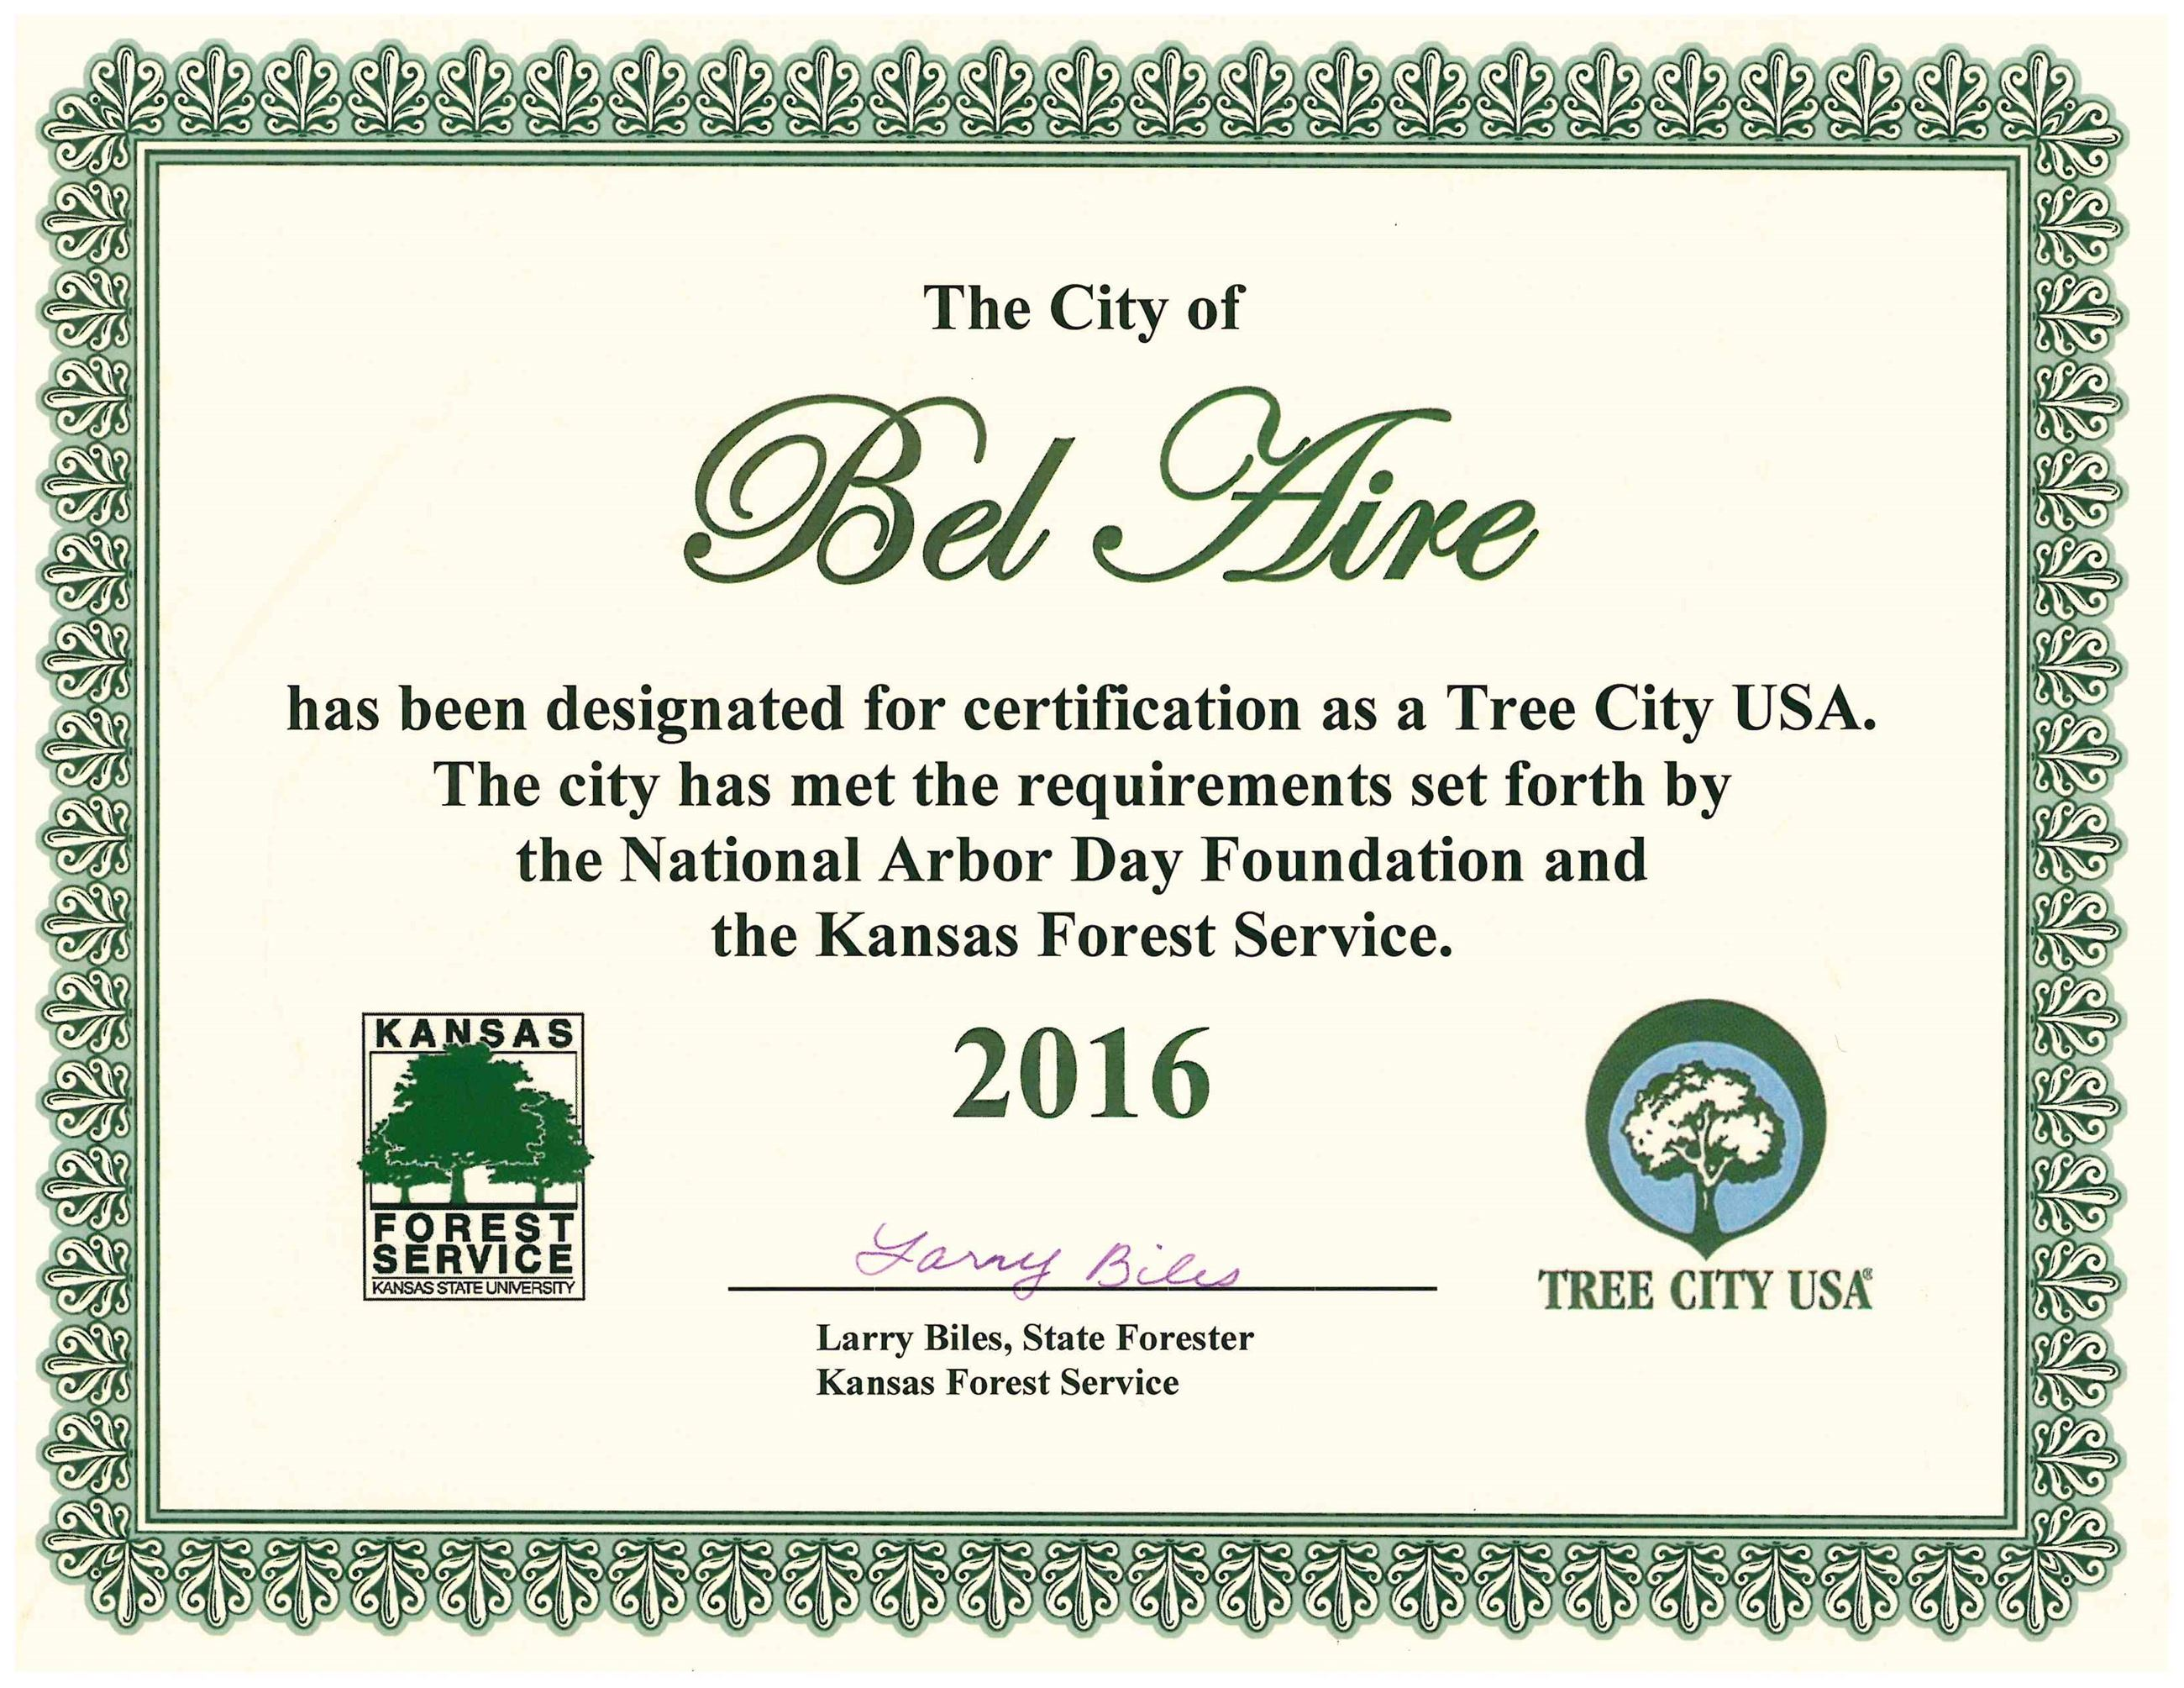 Tree City USA 2016